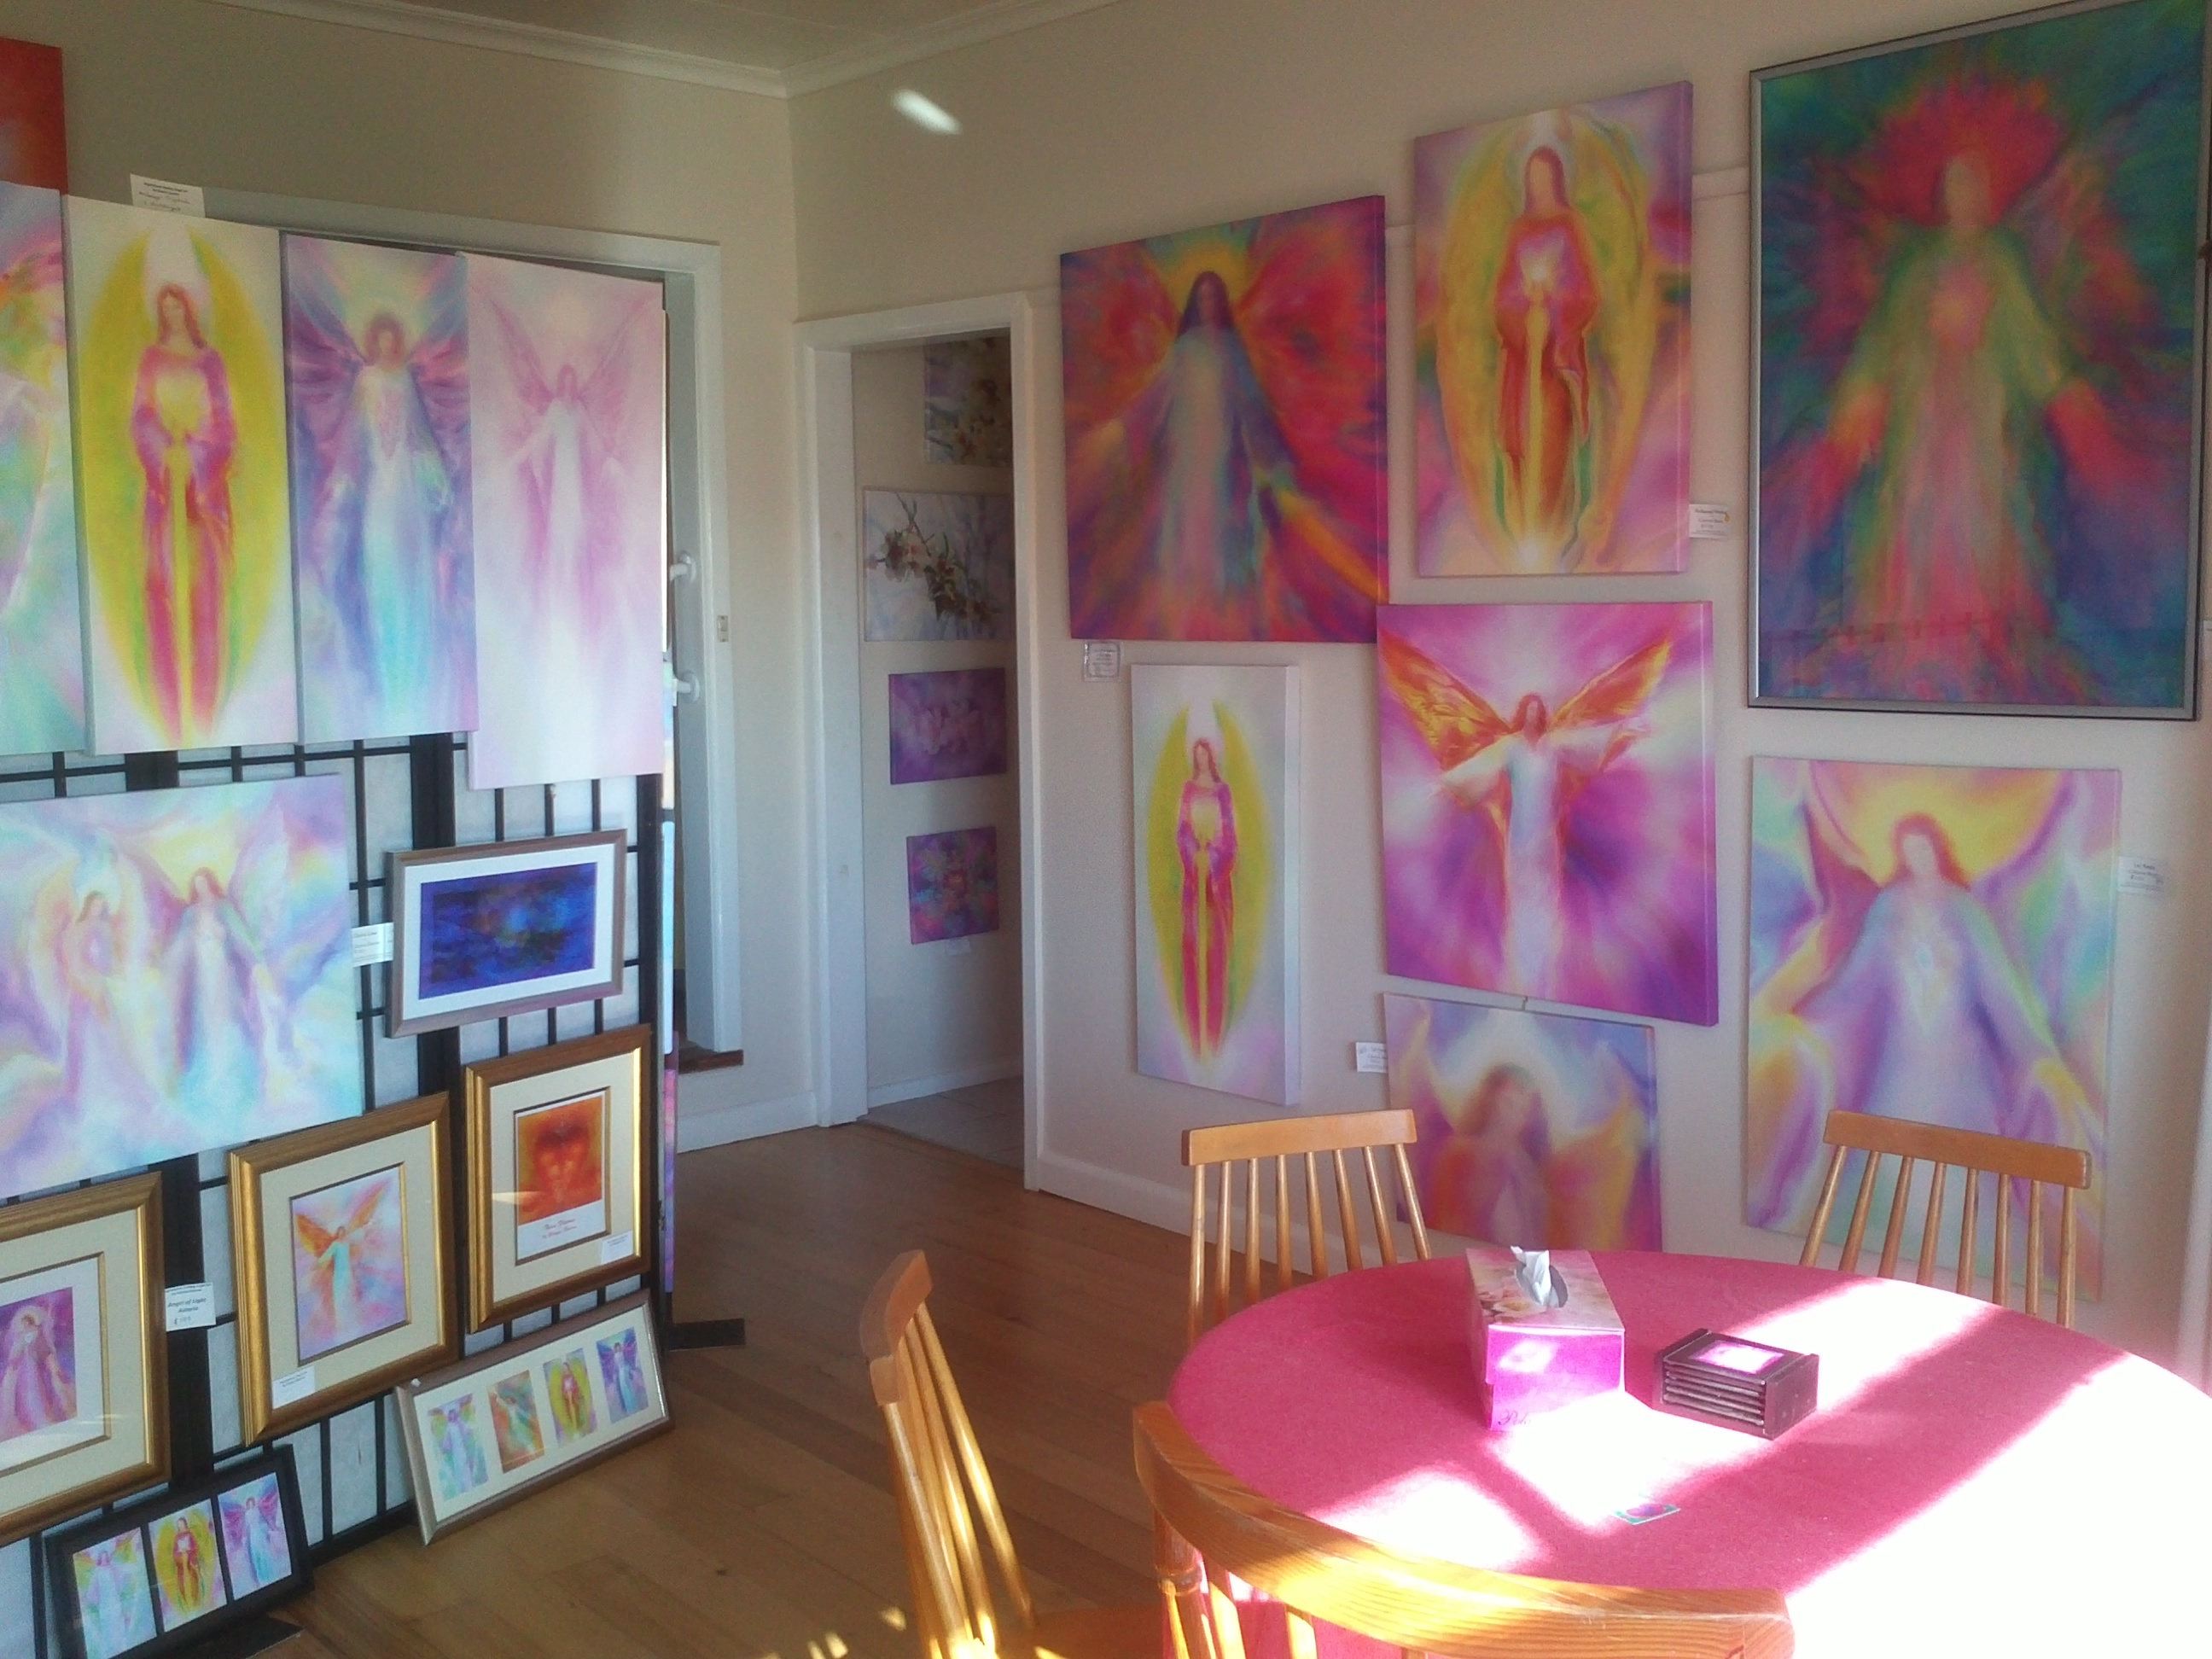 Angel Paintings by Glenyss Bourne at Sanctuary Angel Gallery